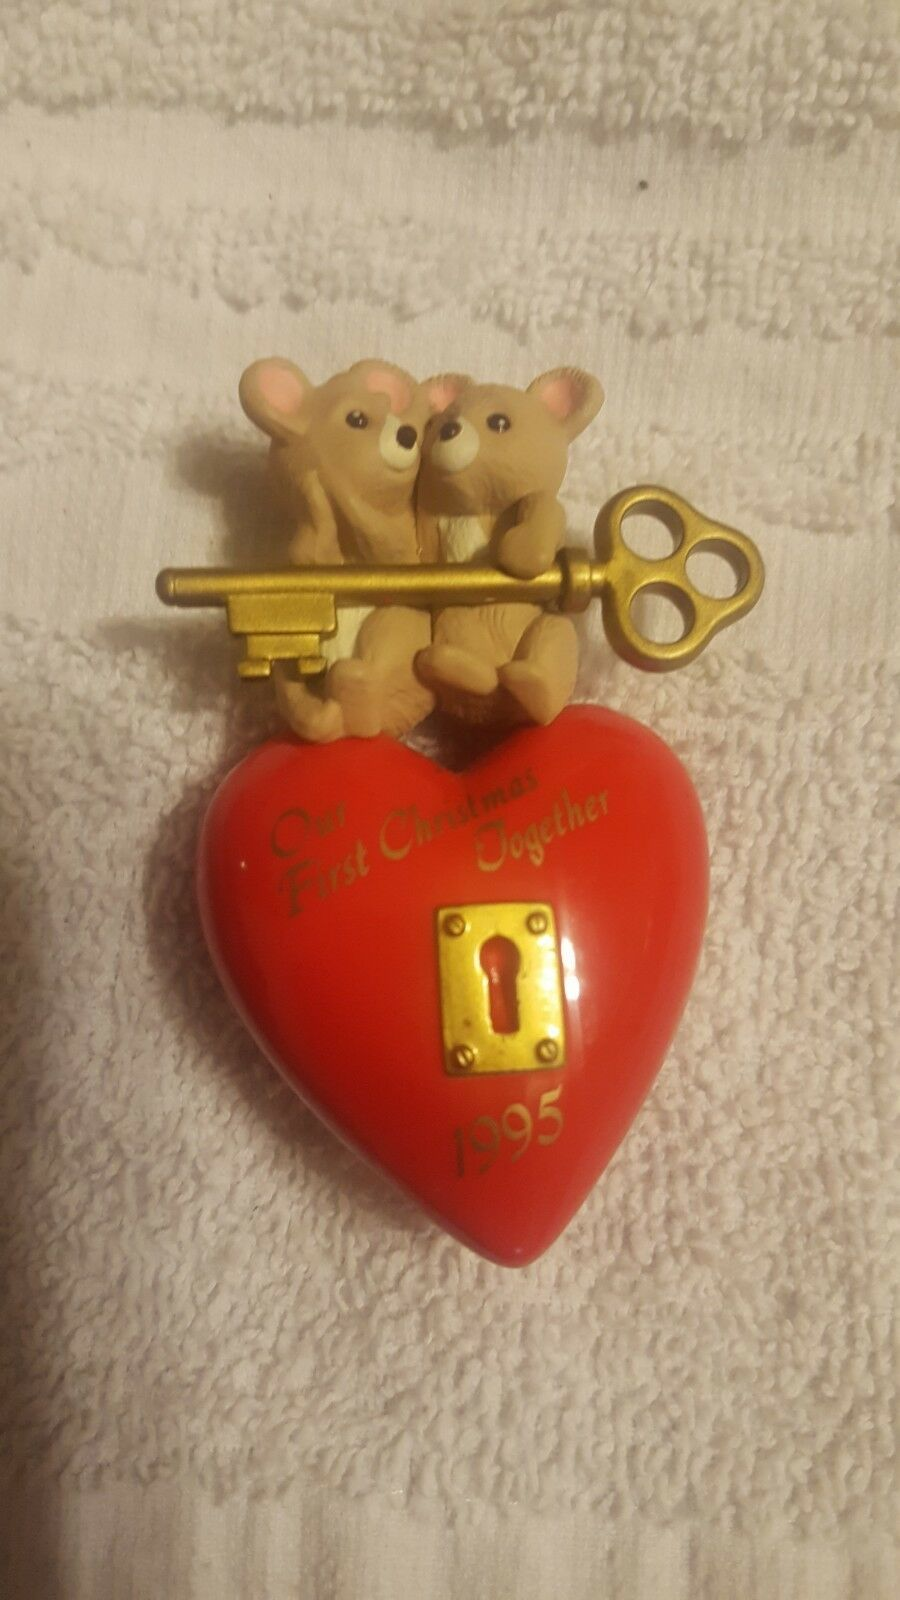 "1995 Hallmark Keepsake Ornament ""Our First Christmas Together"" Heart and Key"